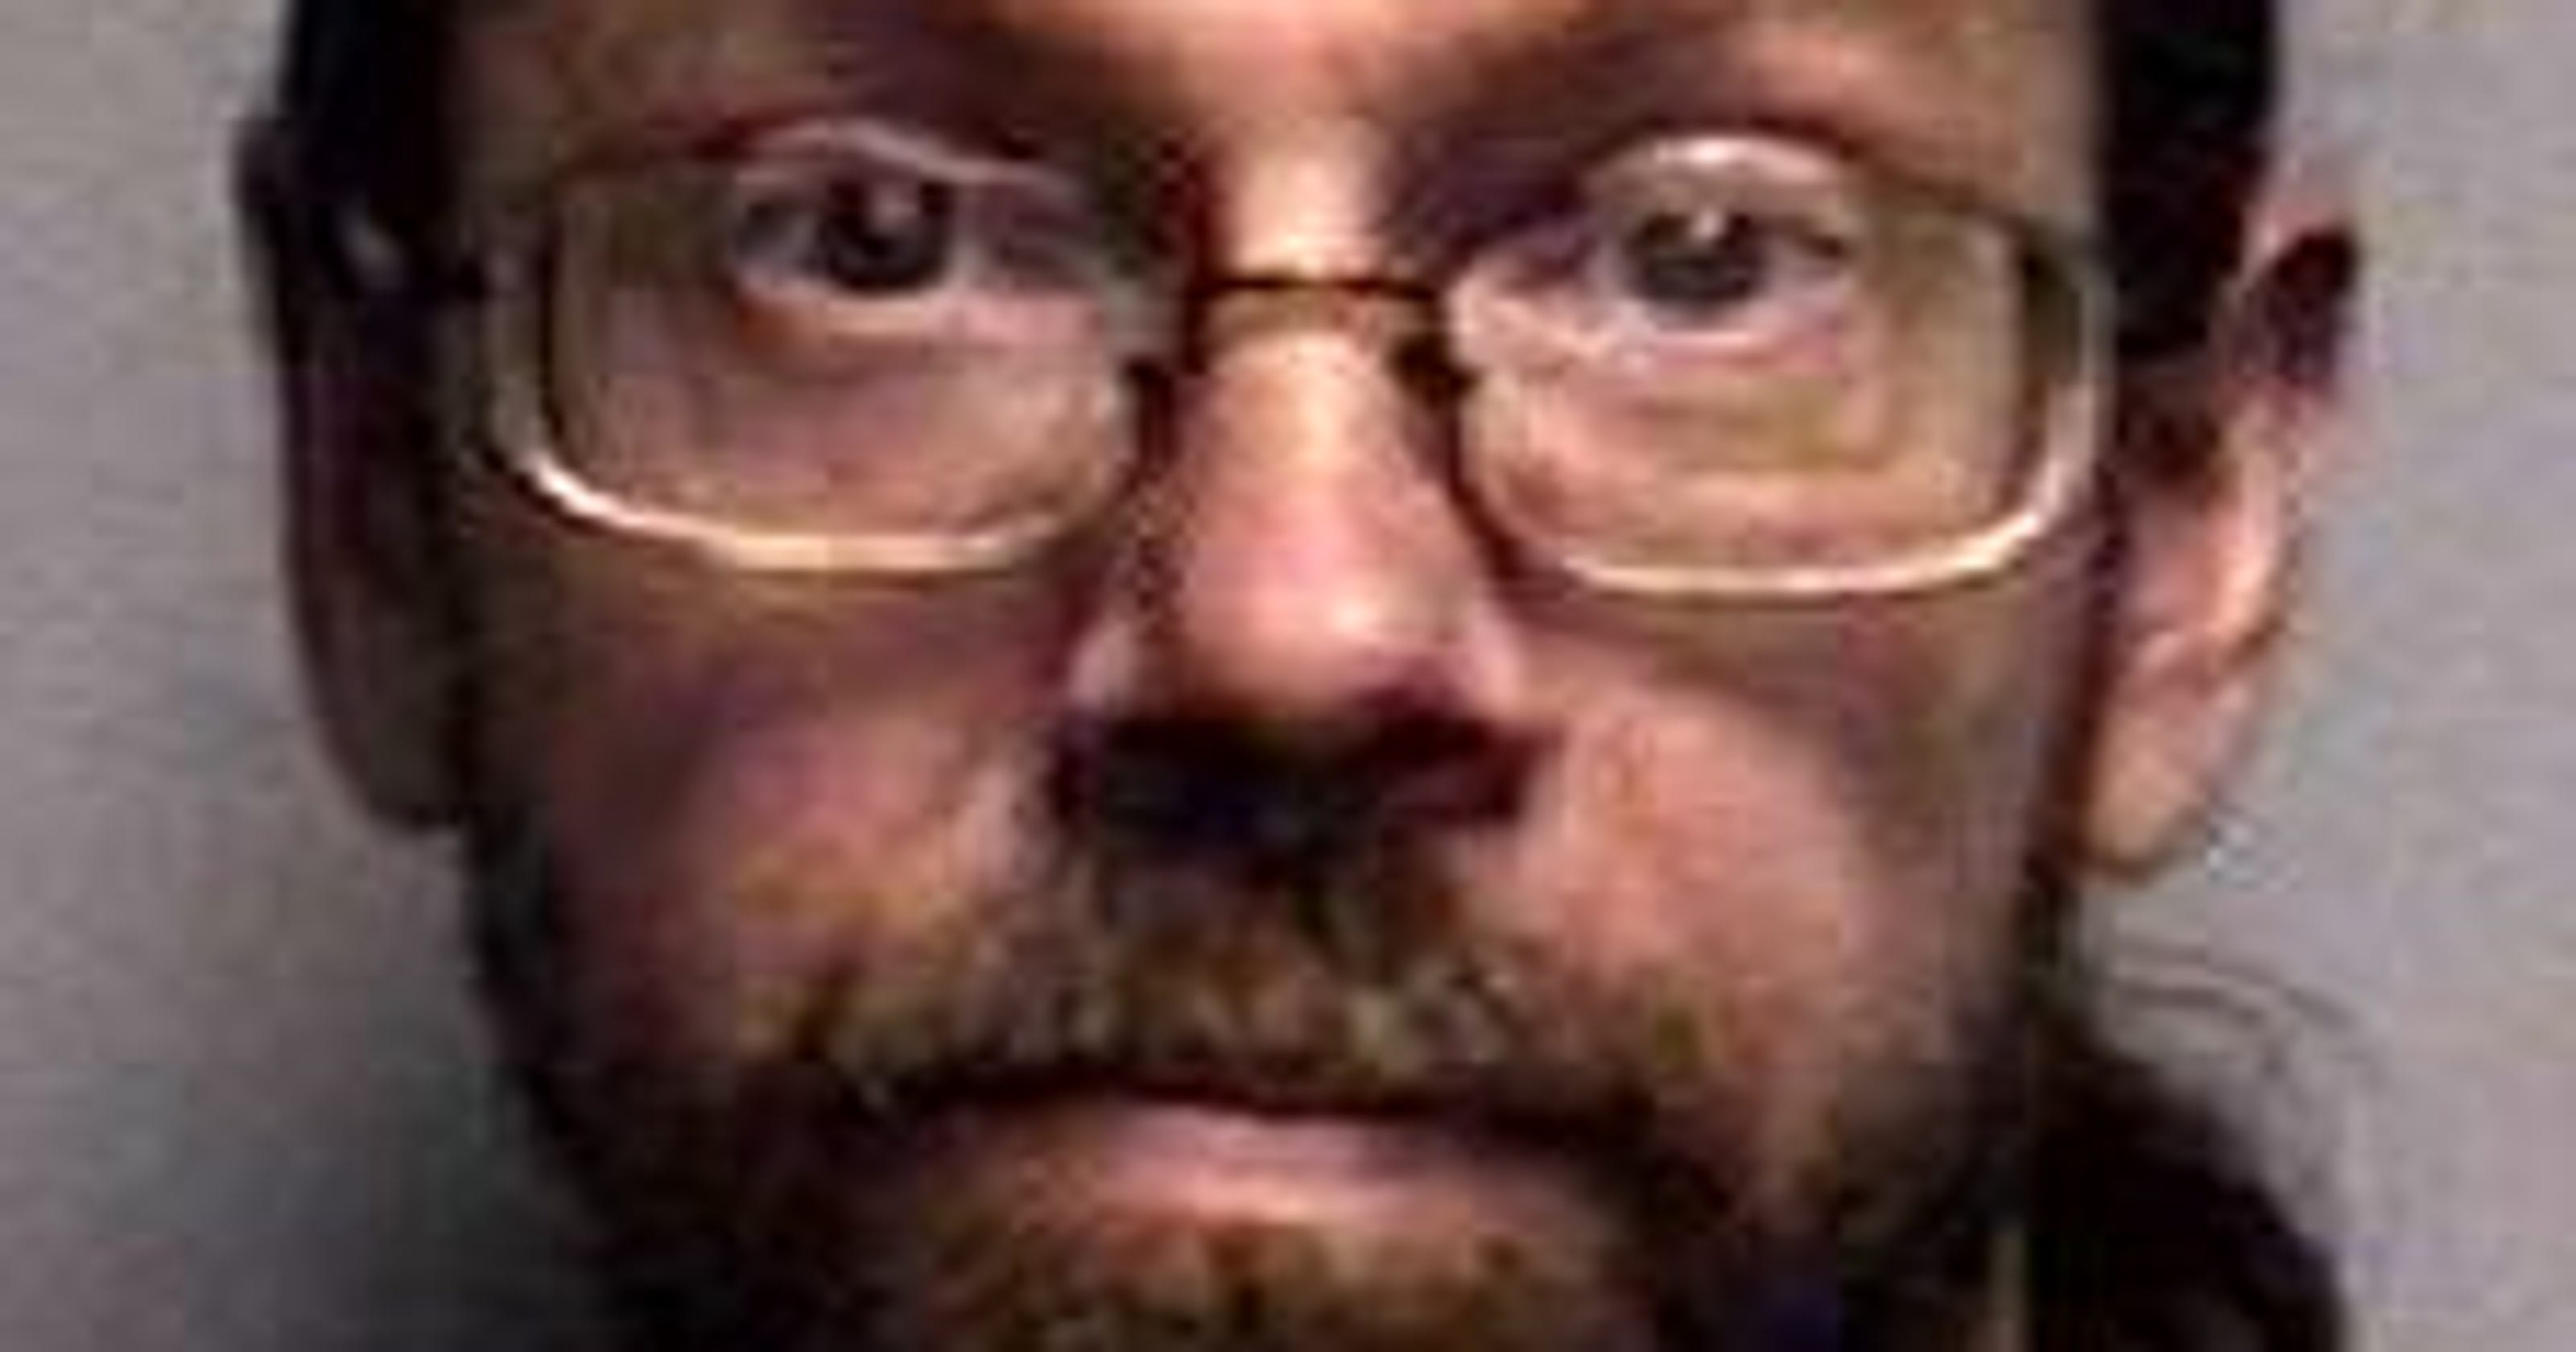 Child Porn: Binghamton sex offender gets 32 years in federal prison